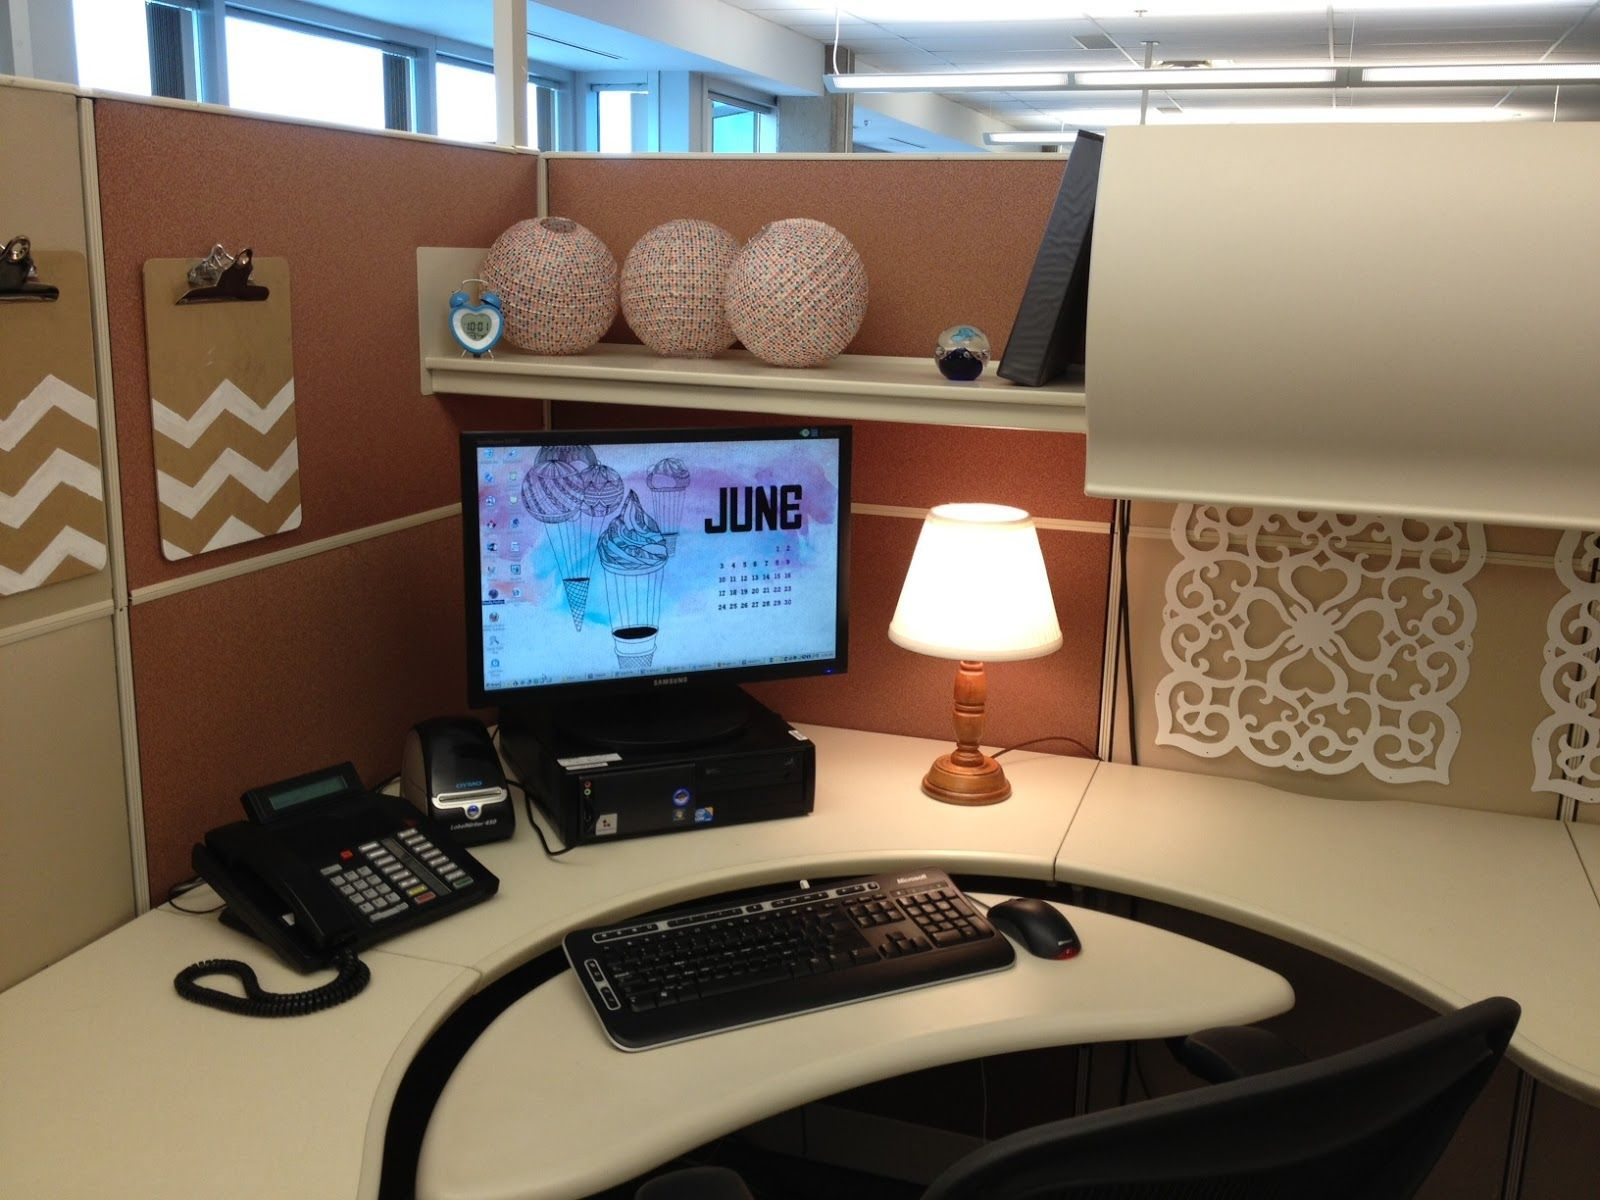 Cubicle Decorating Ideas Gorgeous 20 Cubicle Decor Ideas To Make Your Office Style Work As Hard As Decorating Design